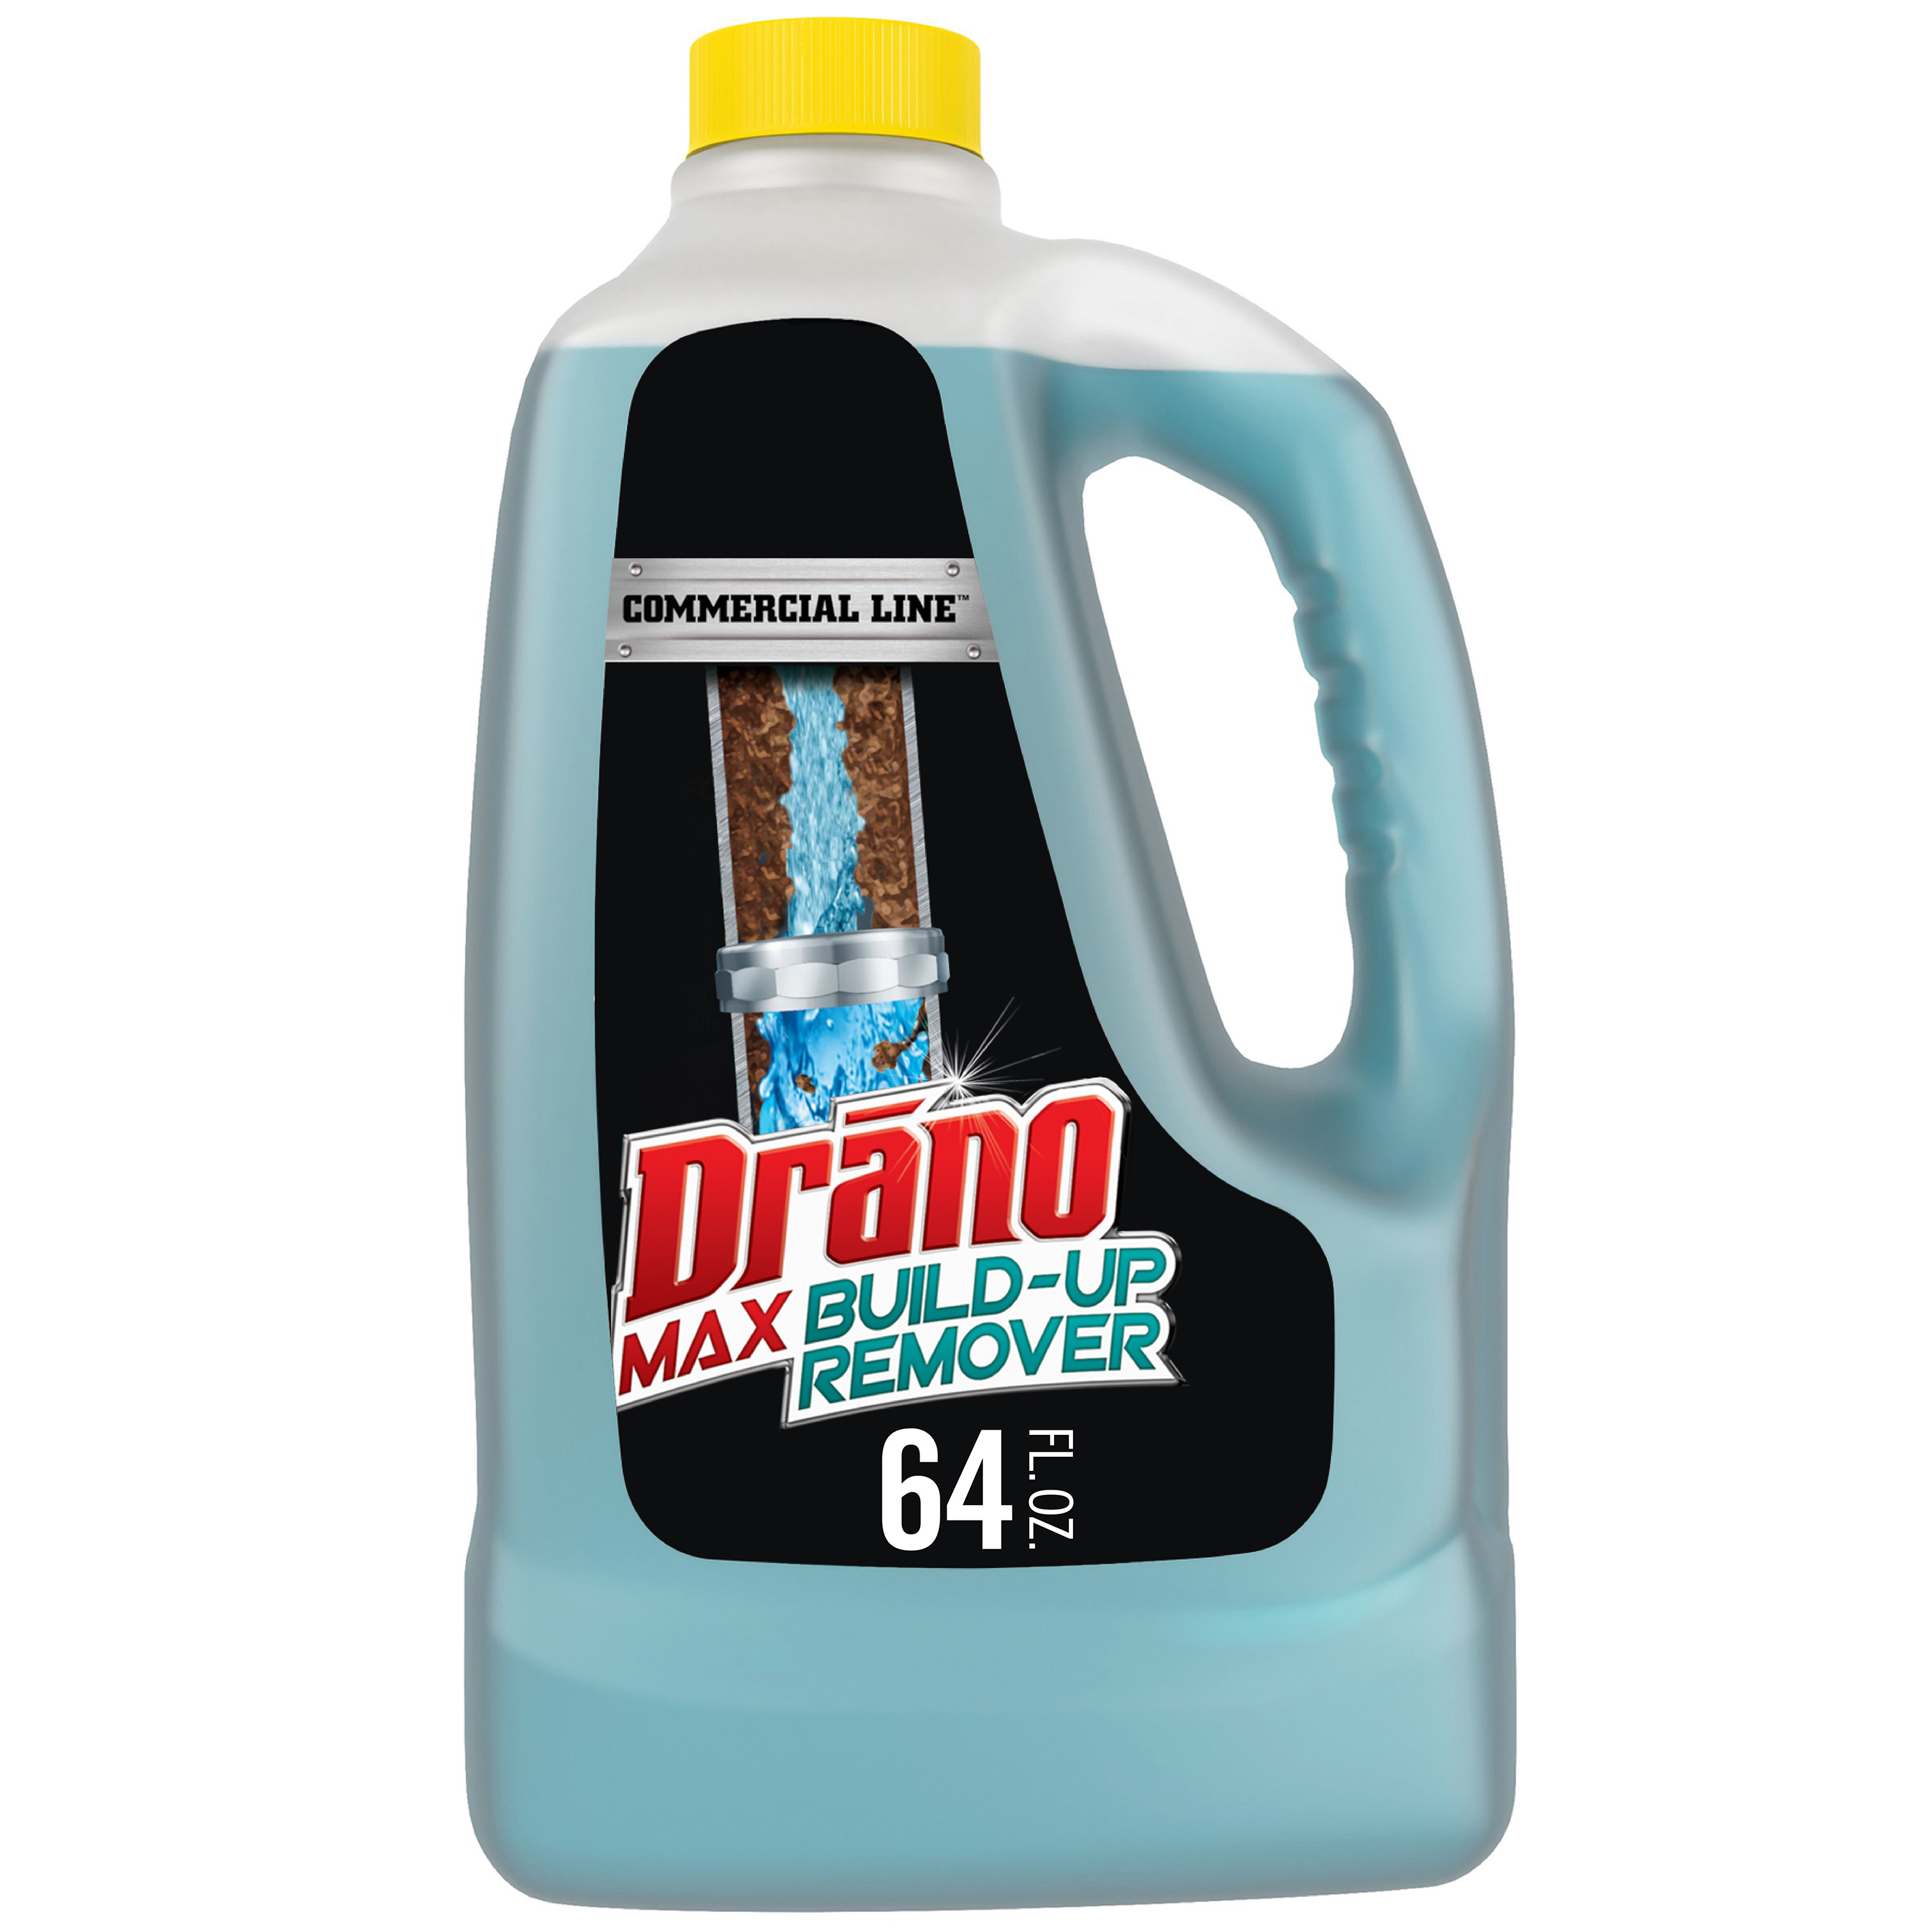 Drano Max Build-Up Remover, Commercial Line, 64 fl oz